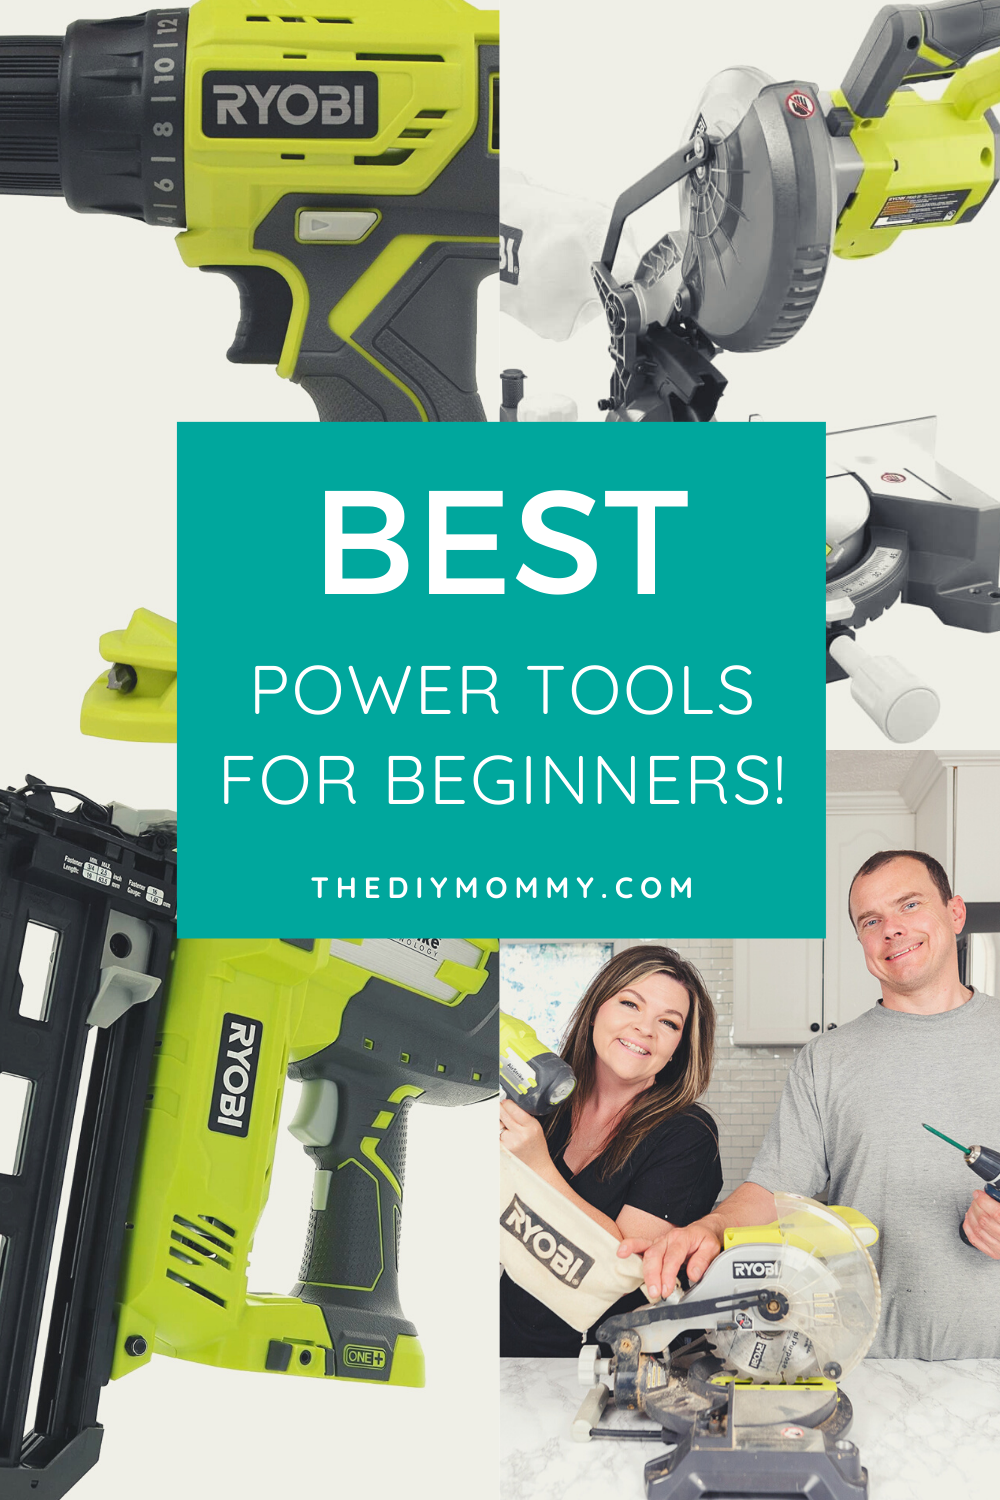 Love to DIY? These power tools are the best for beginners!